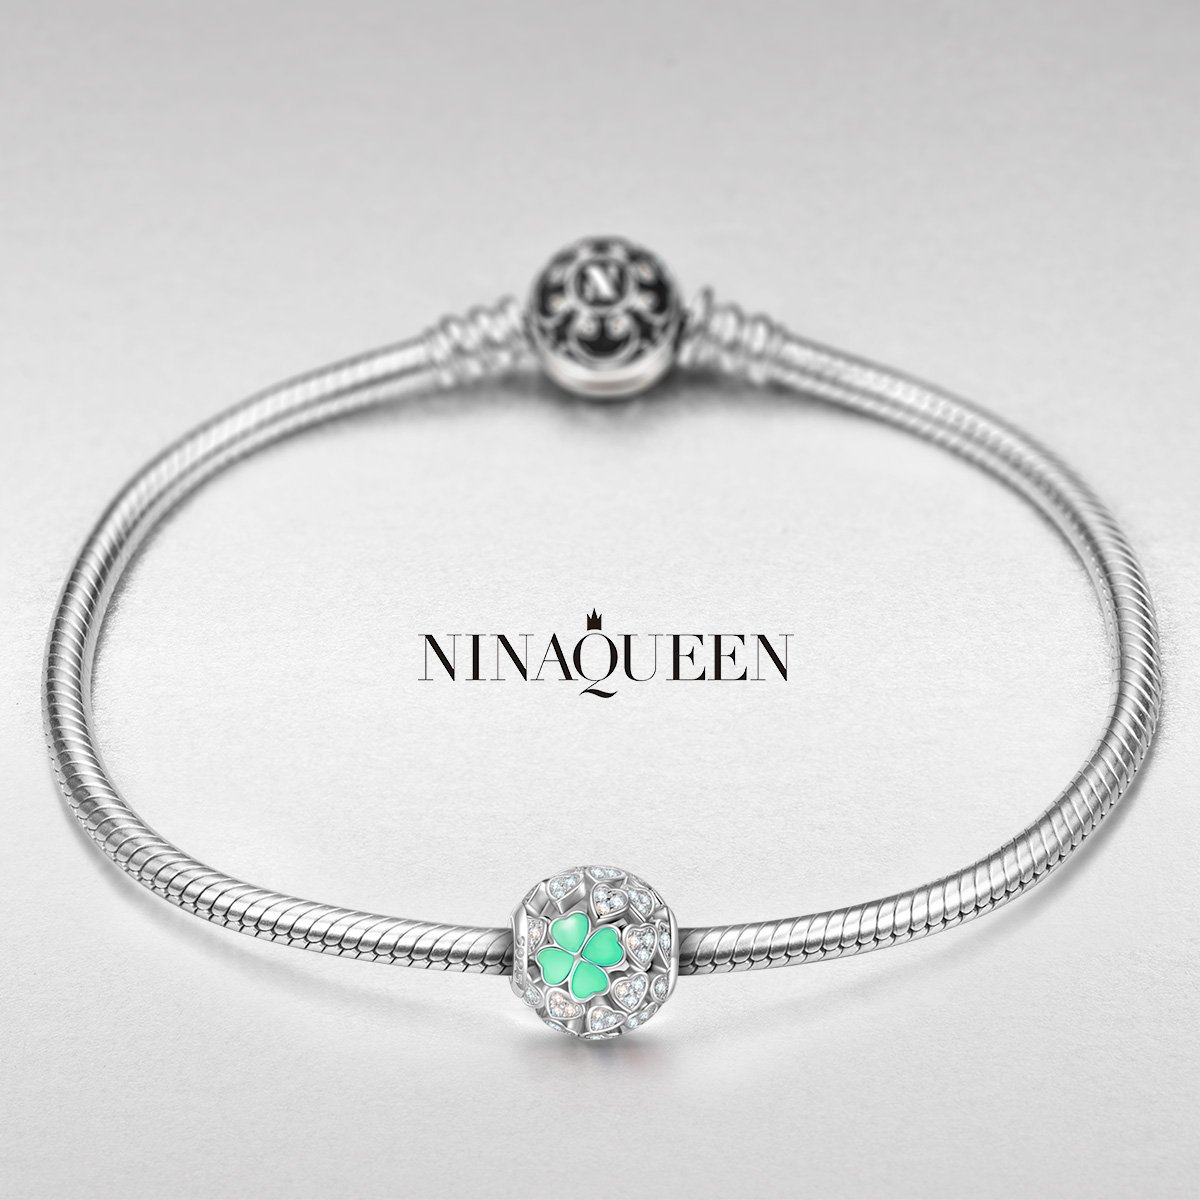 NINAQUEEN Lucky Clover Silver Heart Mint Clovers Openwork Bead Charms for Pandöra Bracelets Necklace Jewelry Making Birthday Anniversary Women Gifts for Her Wife Girlfriend Daughter Teen Girls Kids by NINAQUEEN (Image #3)